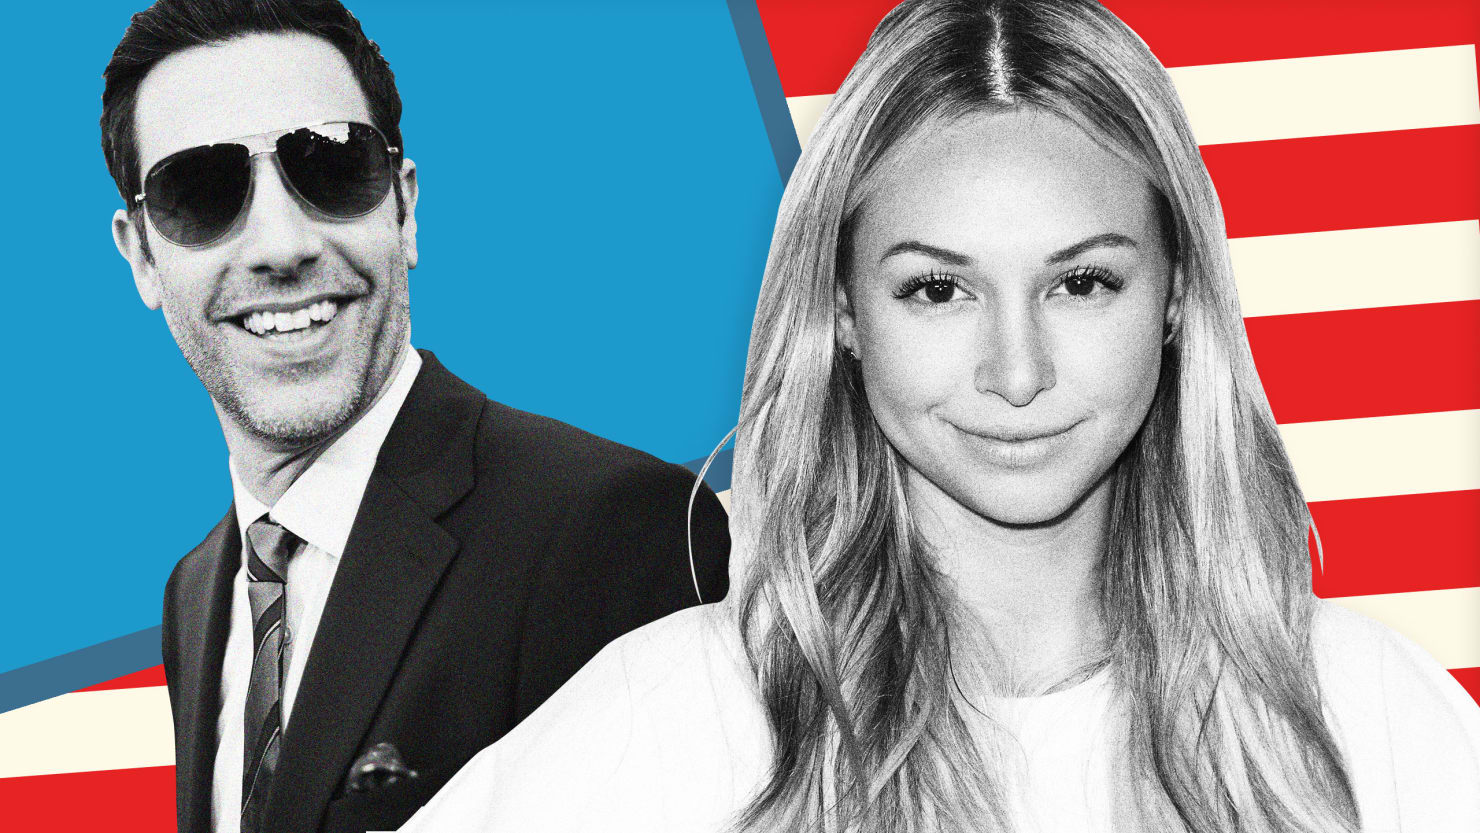 Sacha Baron Cohen Pranked 'Bachelor' Star Corinne Olympios: I Thought I Was 'Going to Die'